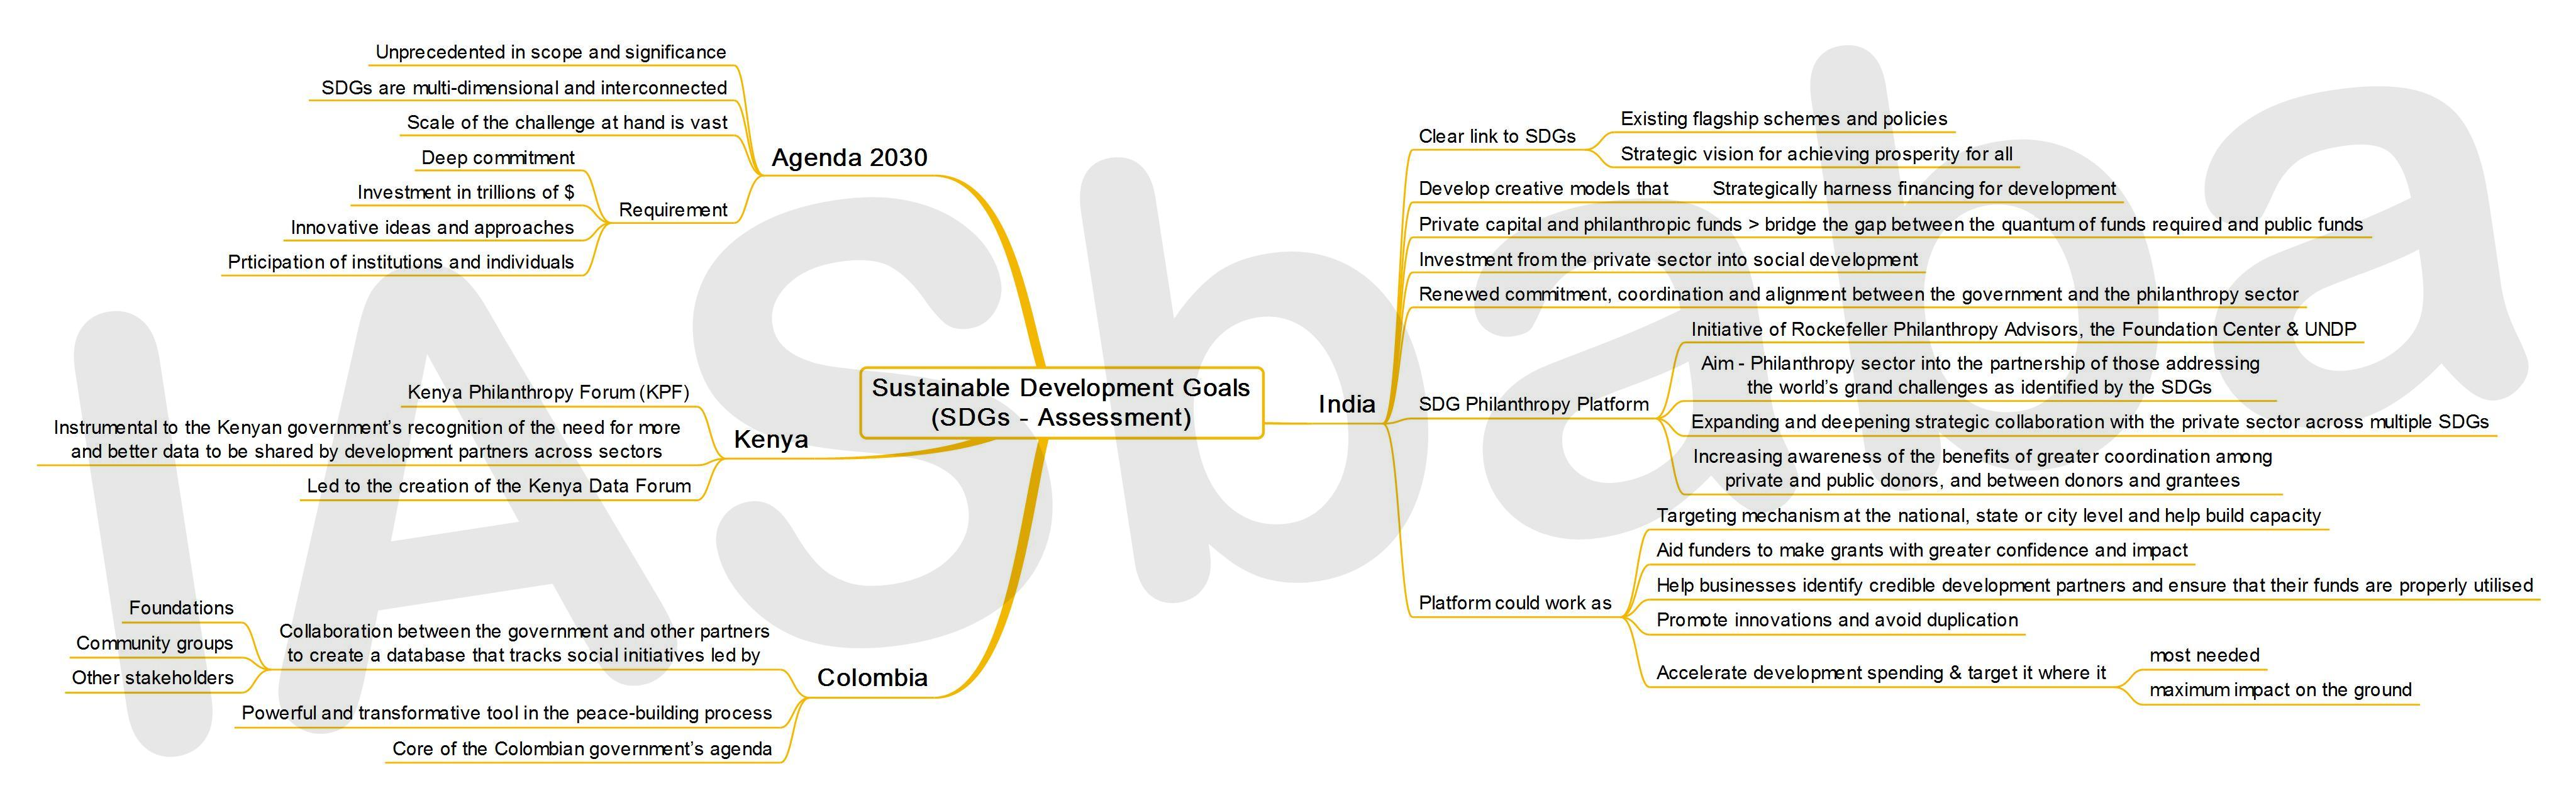 IASbaba's MINDMAP : Issue - Sustainable Development Goals - Assessment